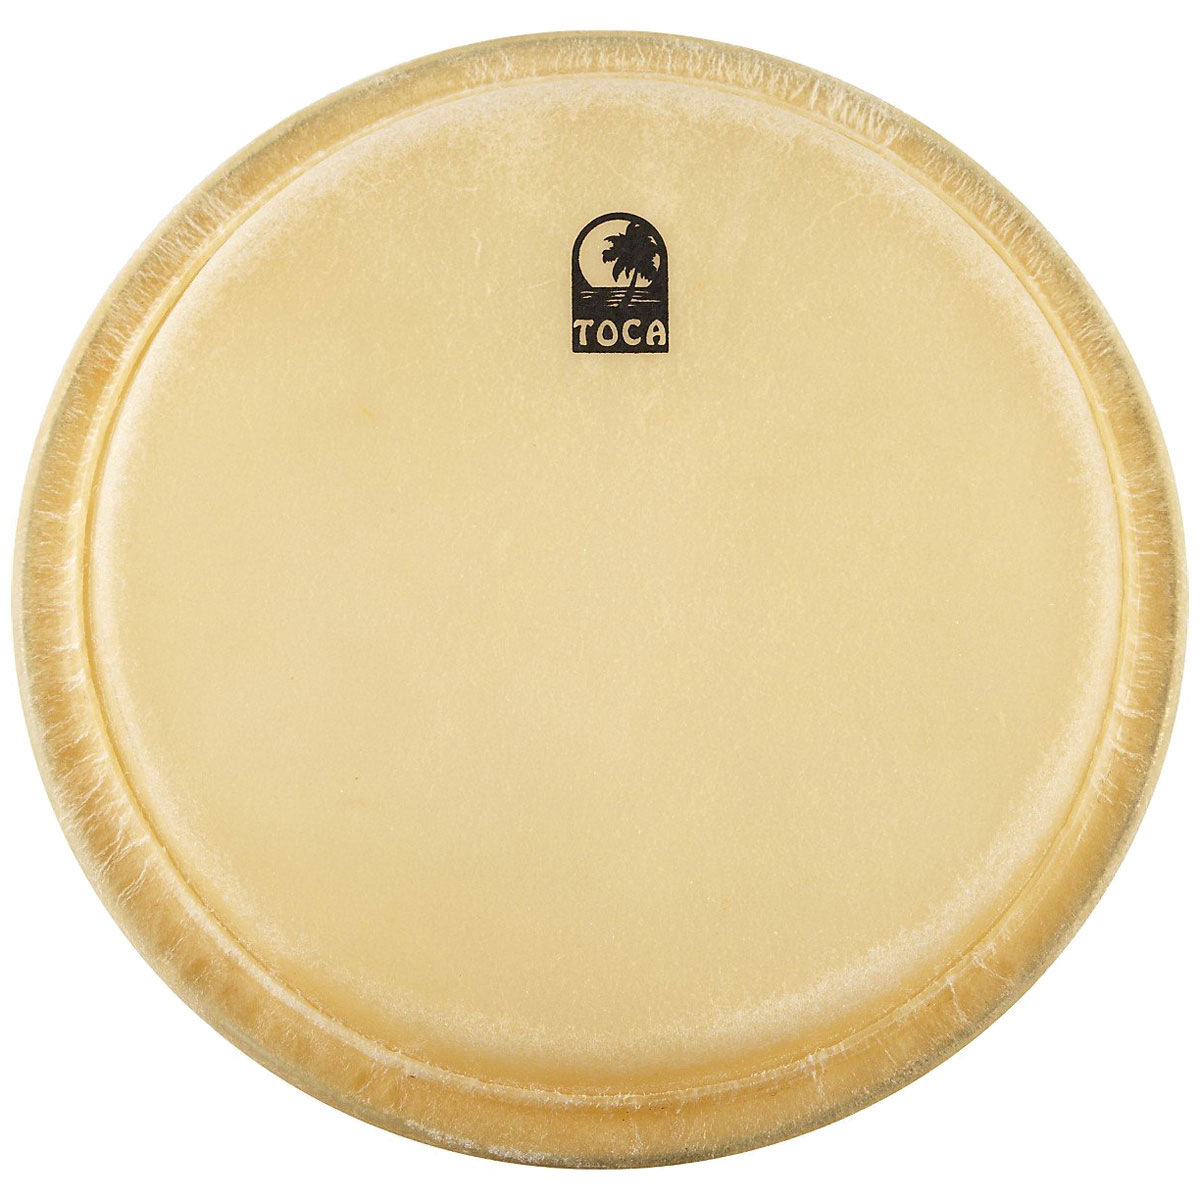 "Toca 10"" Synergy Rawhide Conga Drum Head"